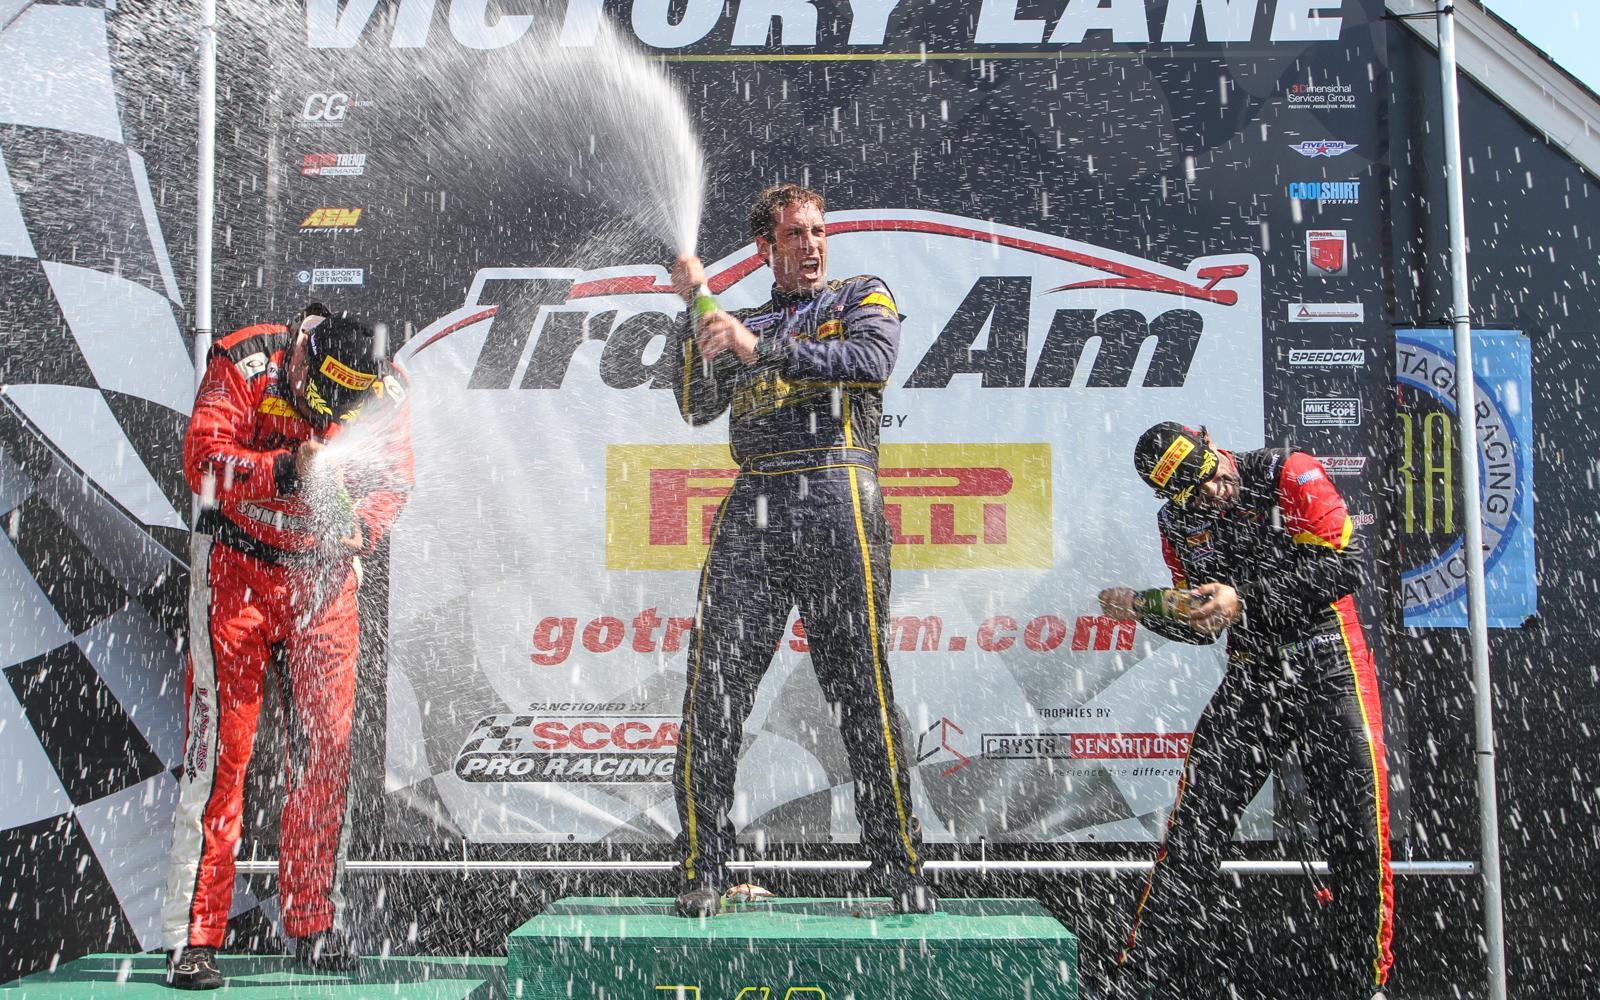 Scott Lagasse, Jr., wins VIR Muscle Car Challenge, Matos Clinches TA2 Championship